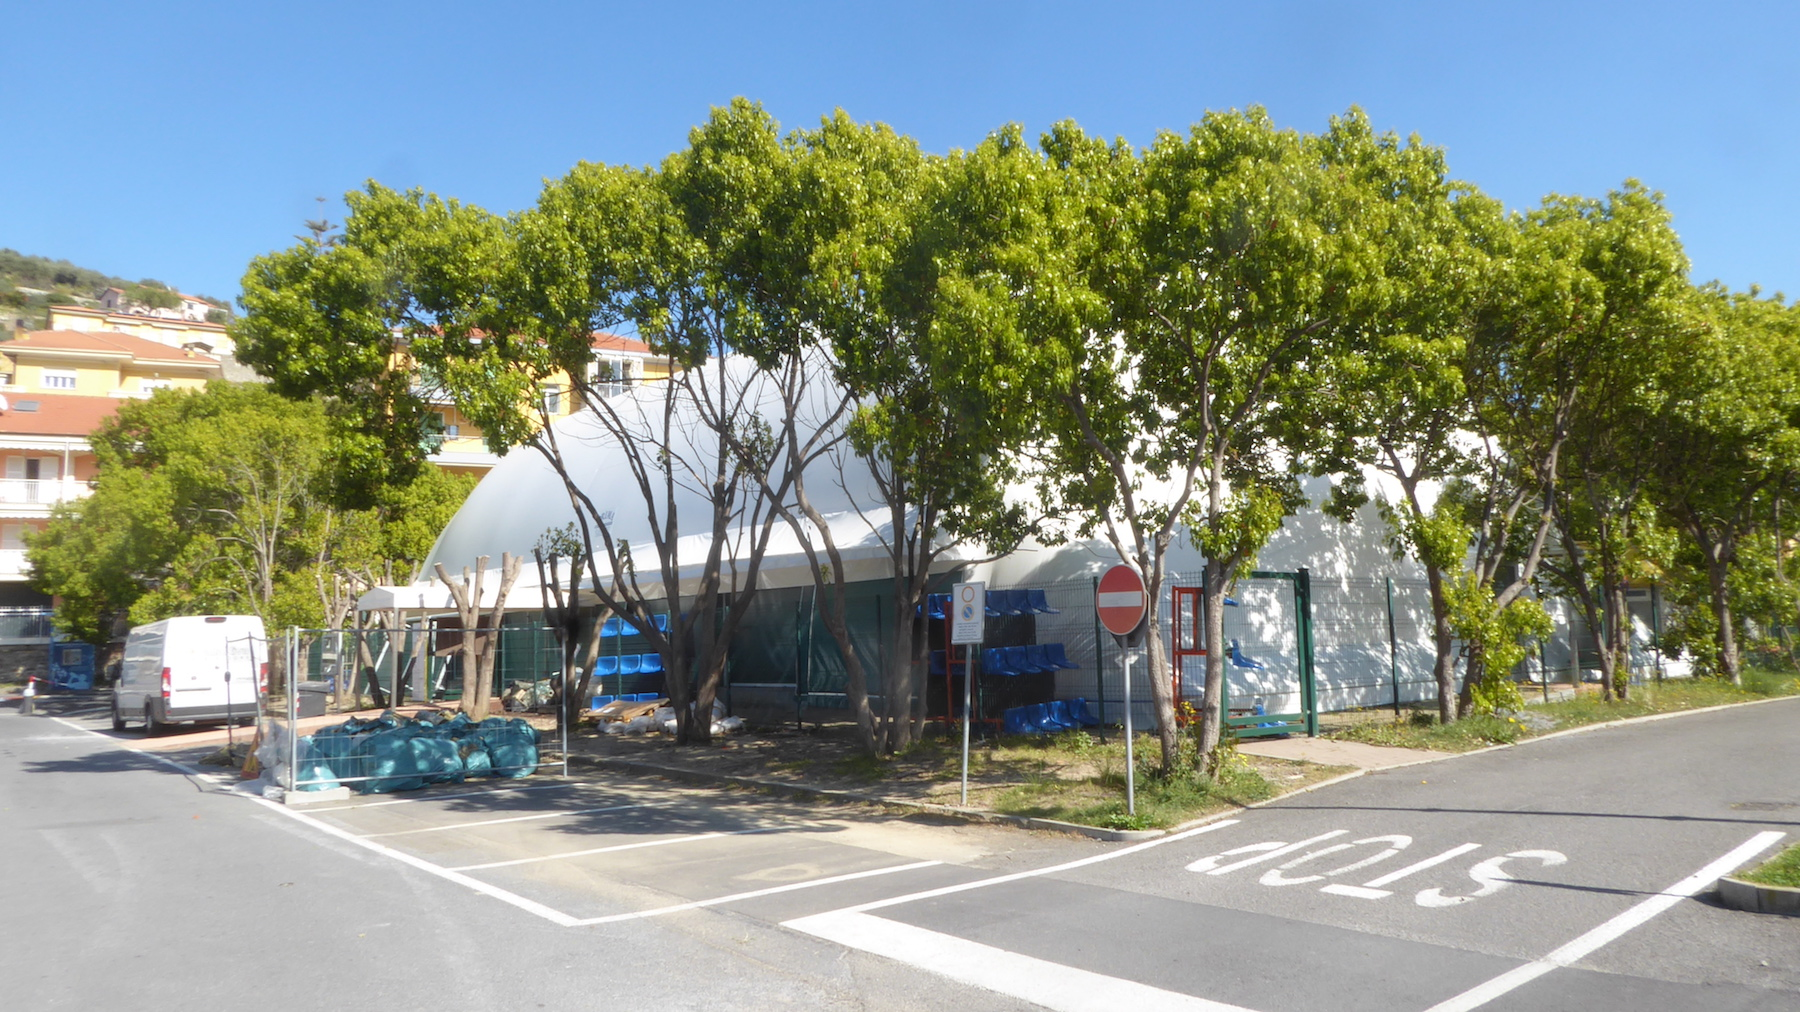 The sports facility seen from the outside